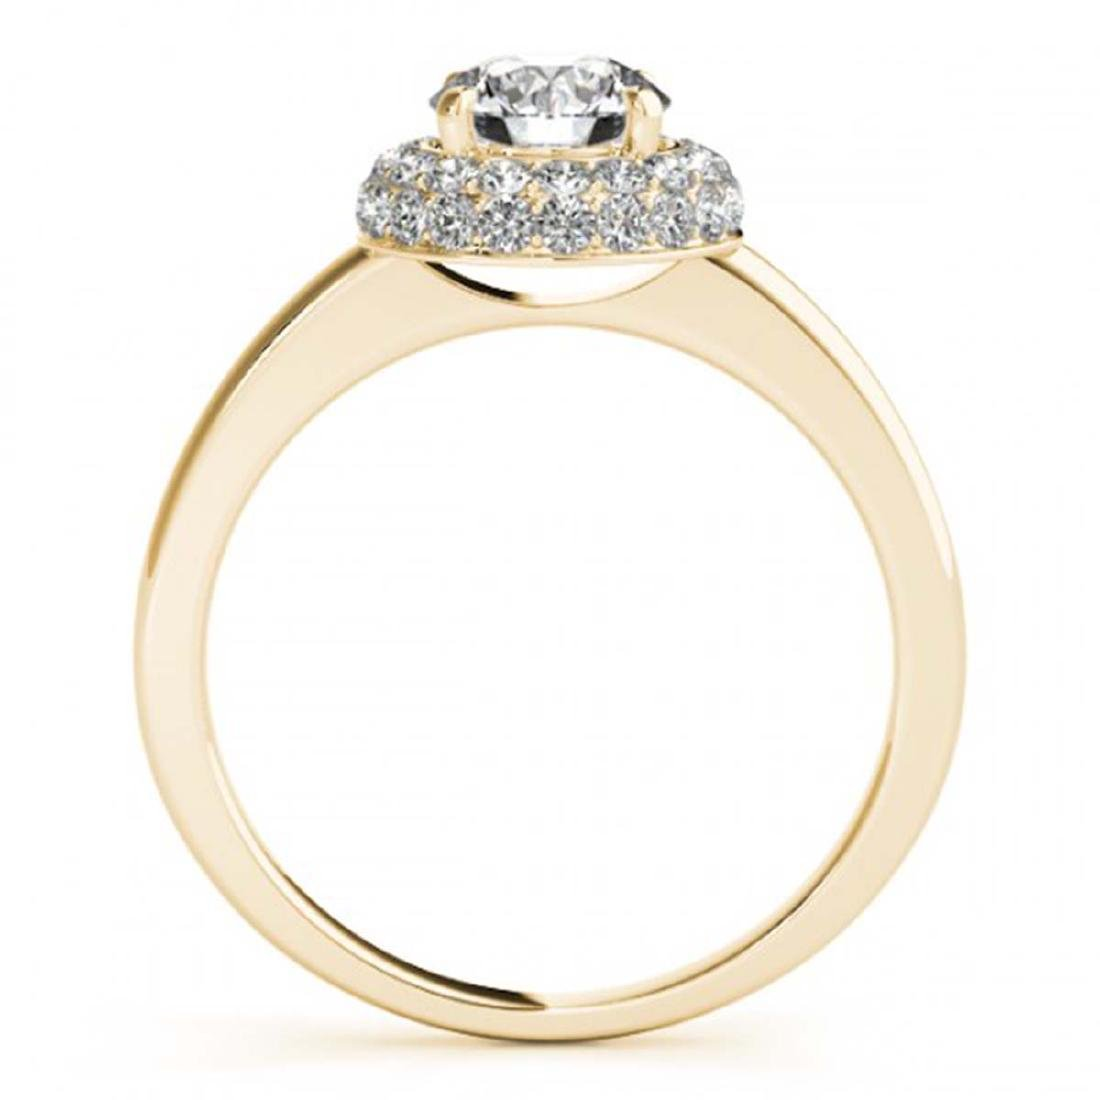 1 ctw VS/SI Diamond Halo Ring 18K Yellow Gold - - 2